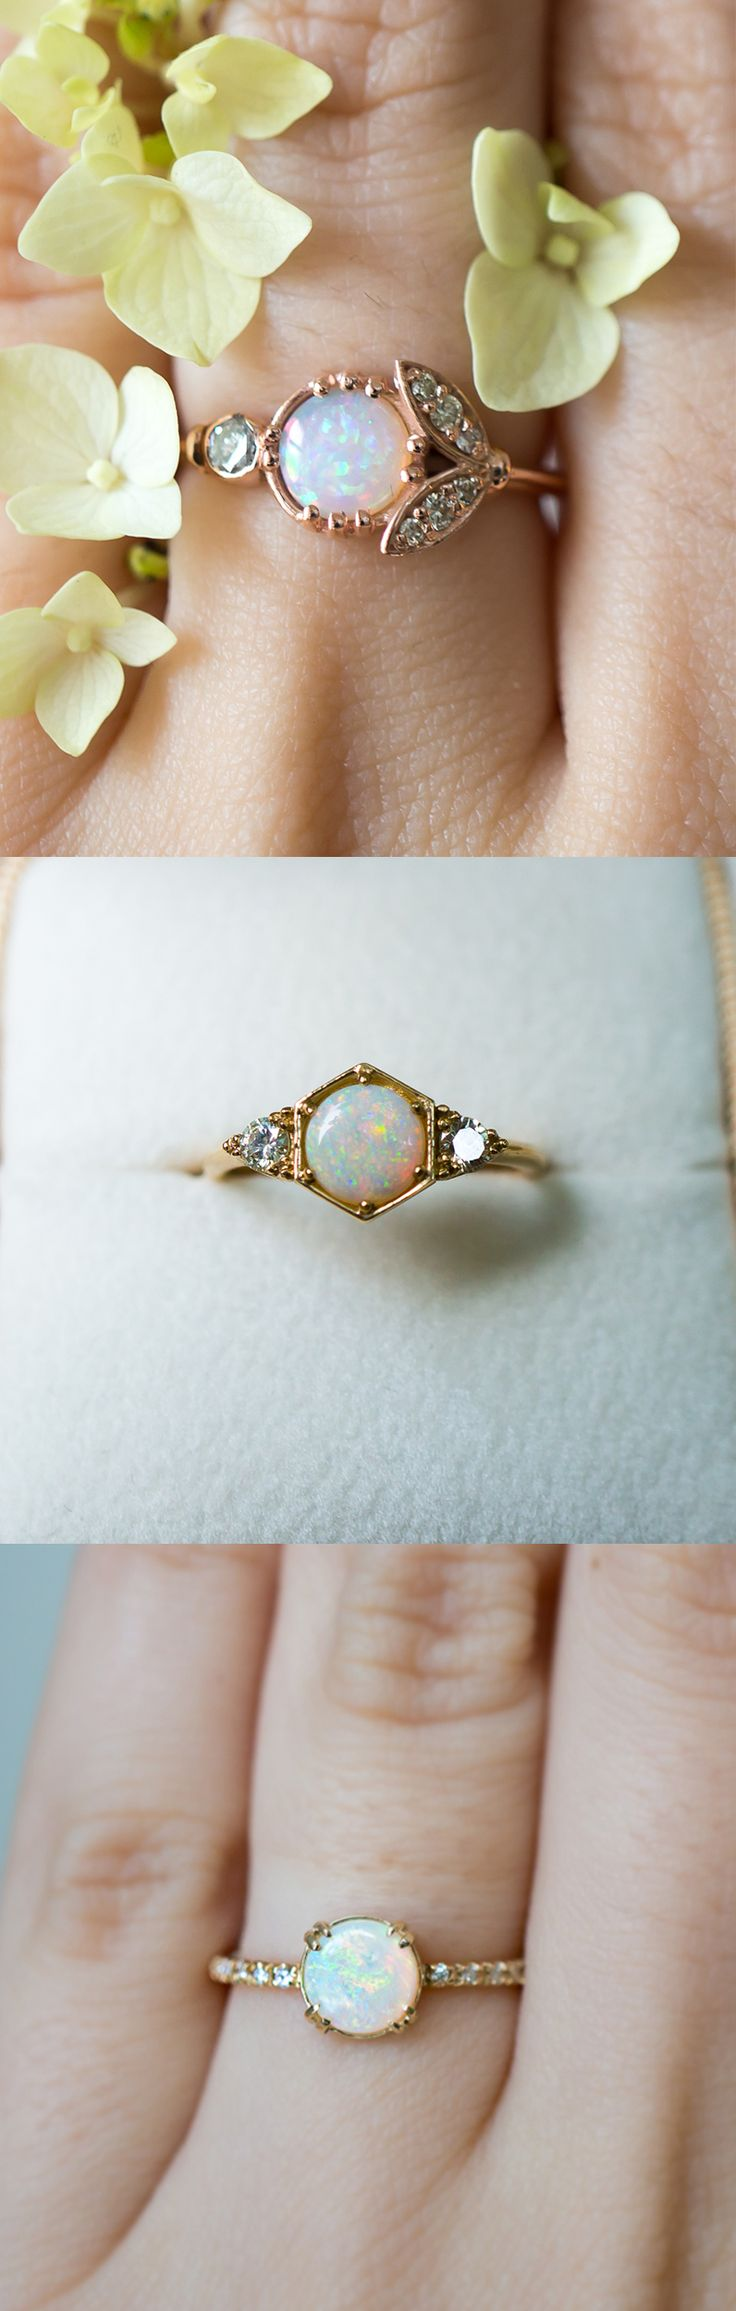 simple vintage rings antique style wedding bands Unique vintage inspired Opal engagement rings by S Kind Co